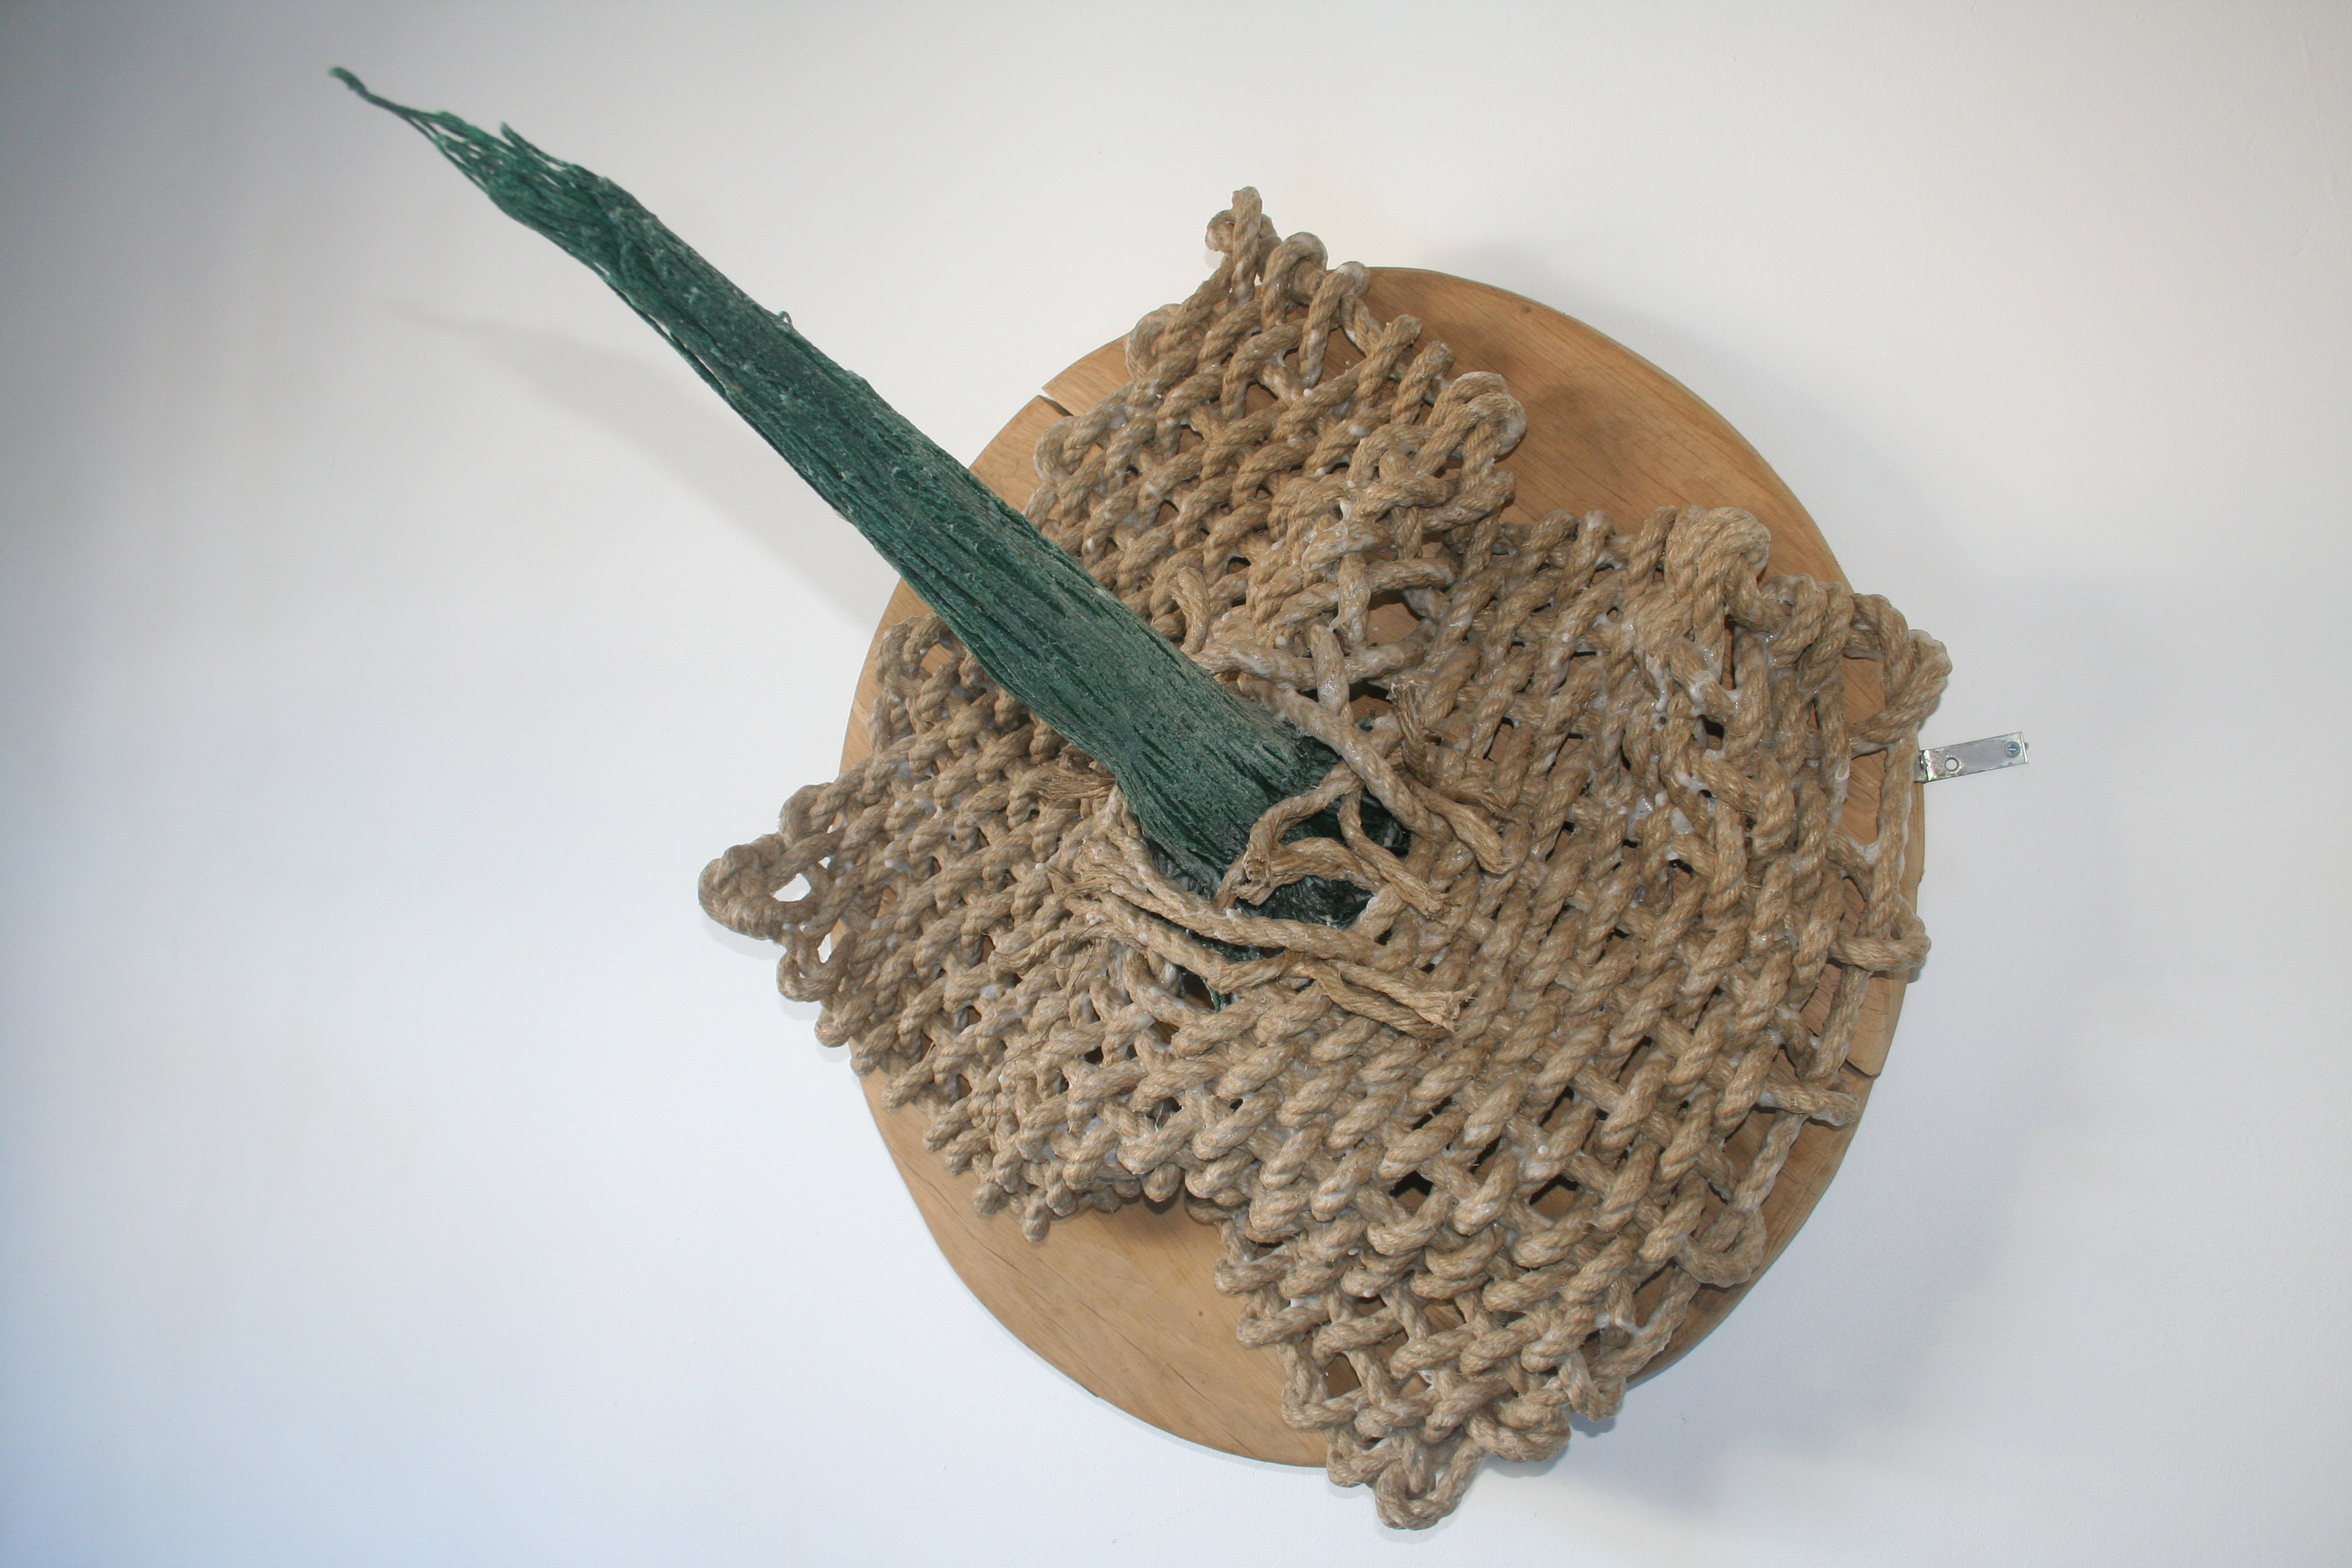 tear - 2011 - hemp rope; wood; cotton